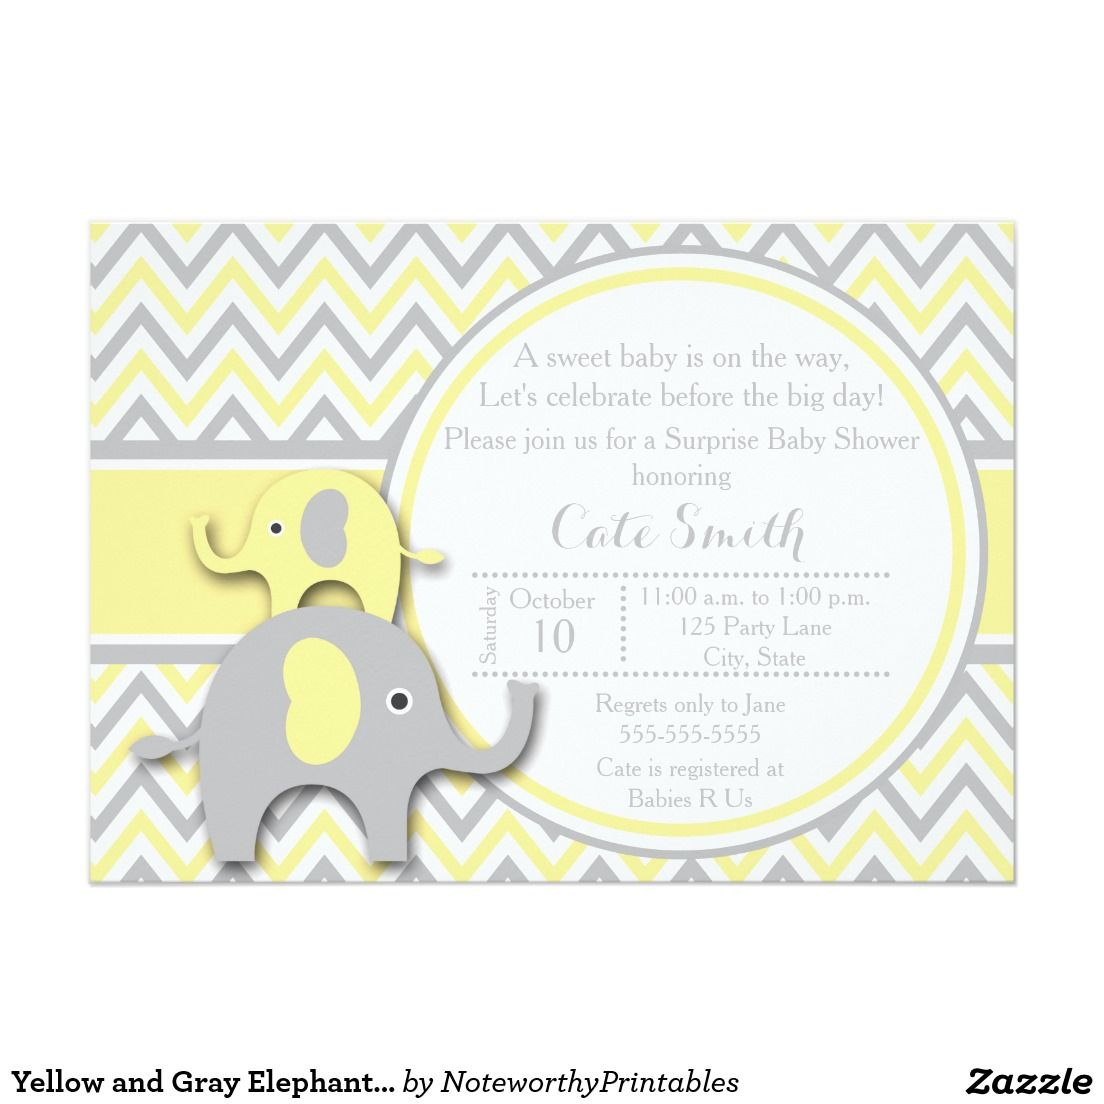 Yellow and Gray Elephant Baby Shower Invitation | baby shower ideas ...